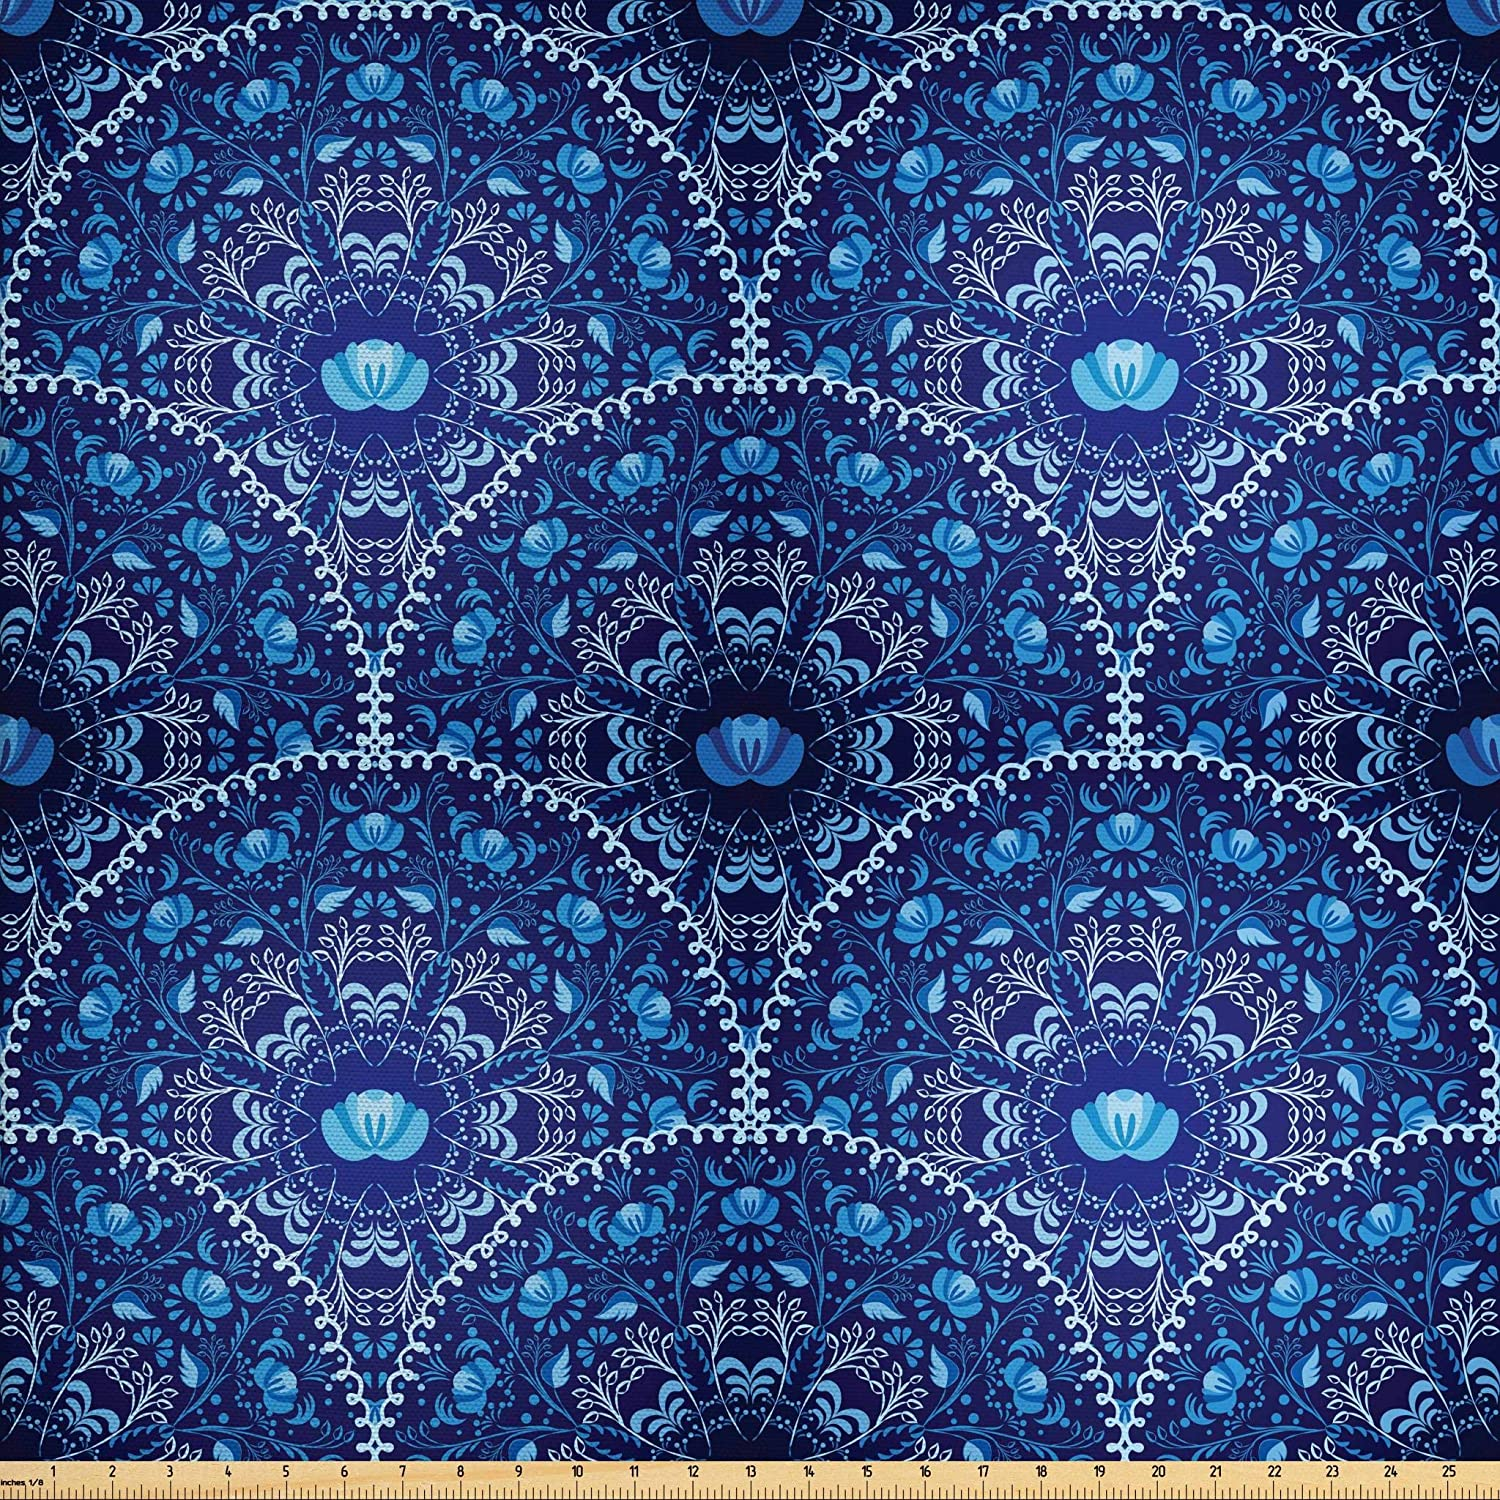 Ambesonne Navy Blue Fabric by The Yard, Circular and Floral Alike Oriental Style Patterned Design Artwork, Decorative Fabric for Upholstery and Home Accents, 5 Yards, Blue Navy